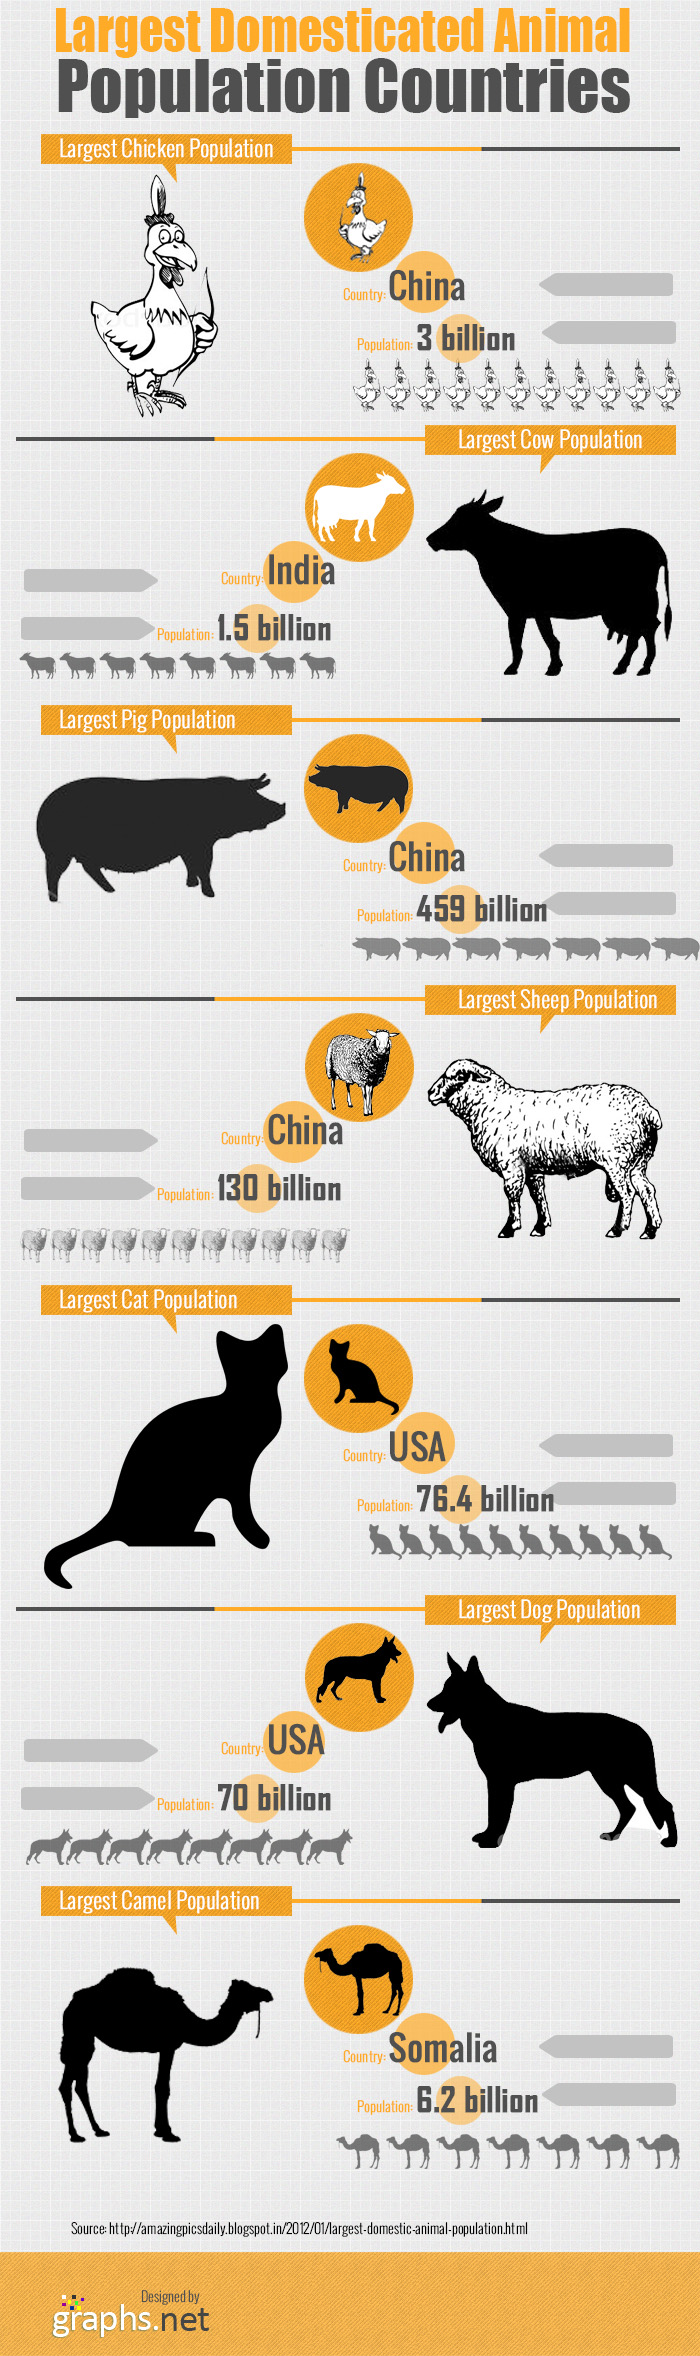 Largest Domesticated Animal Population Countries